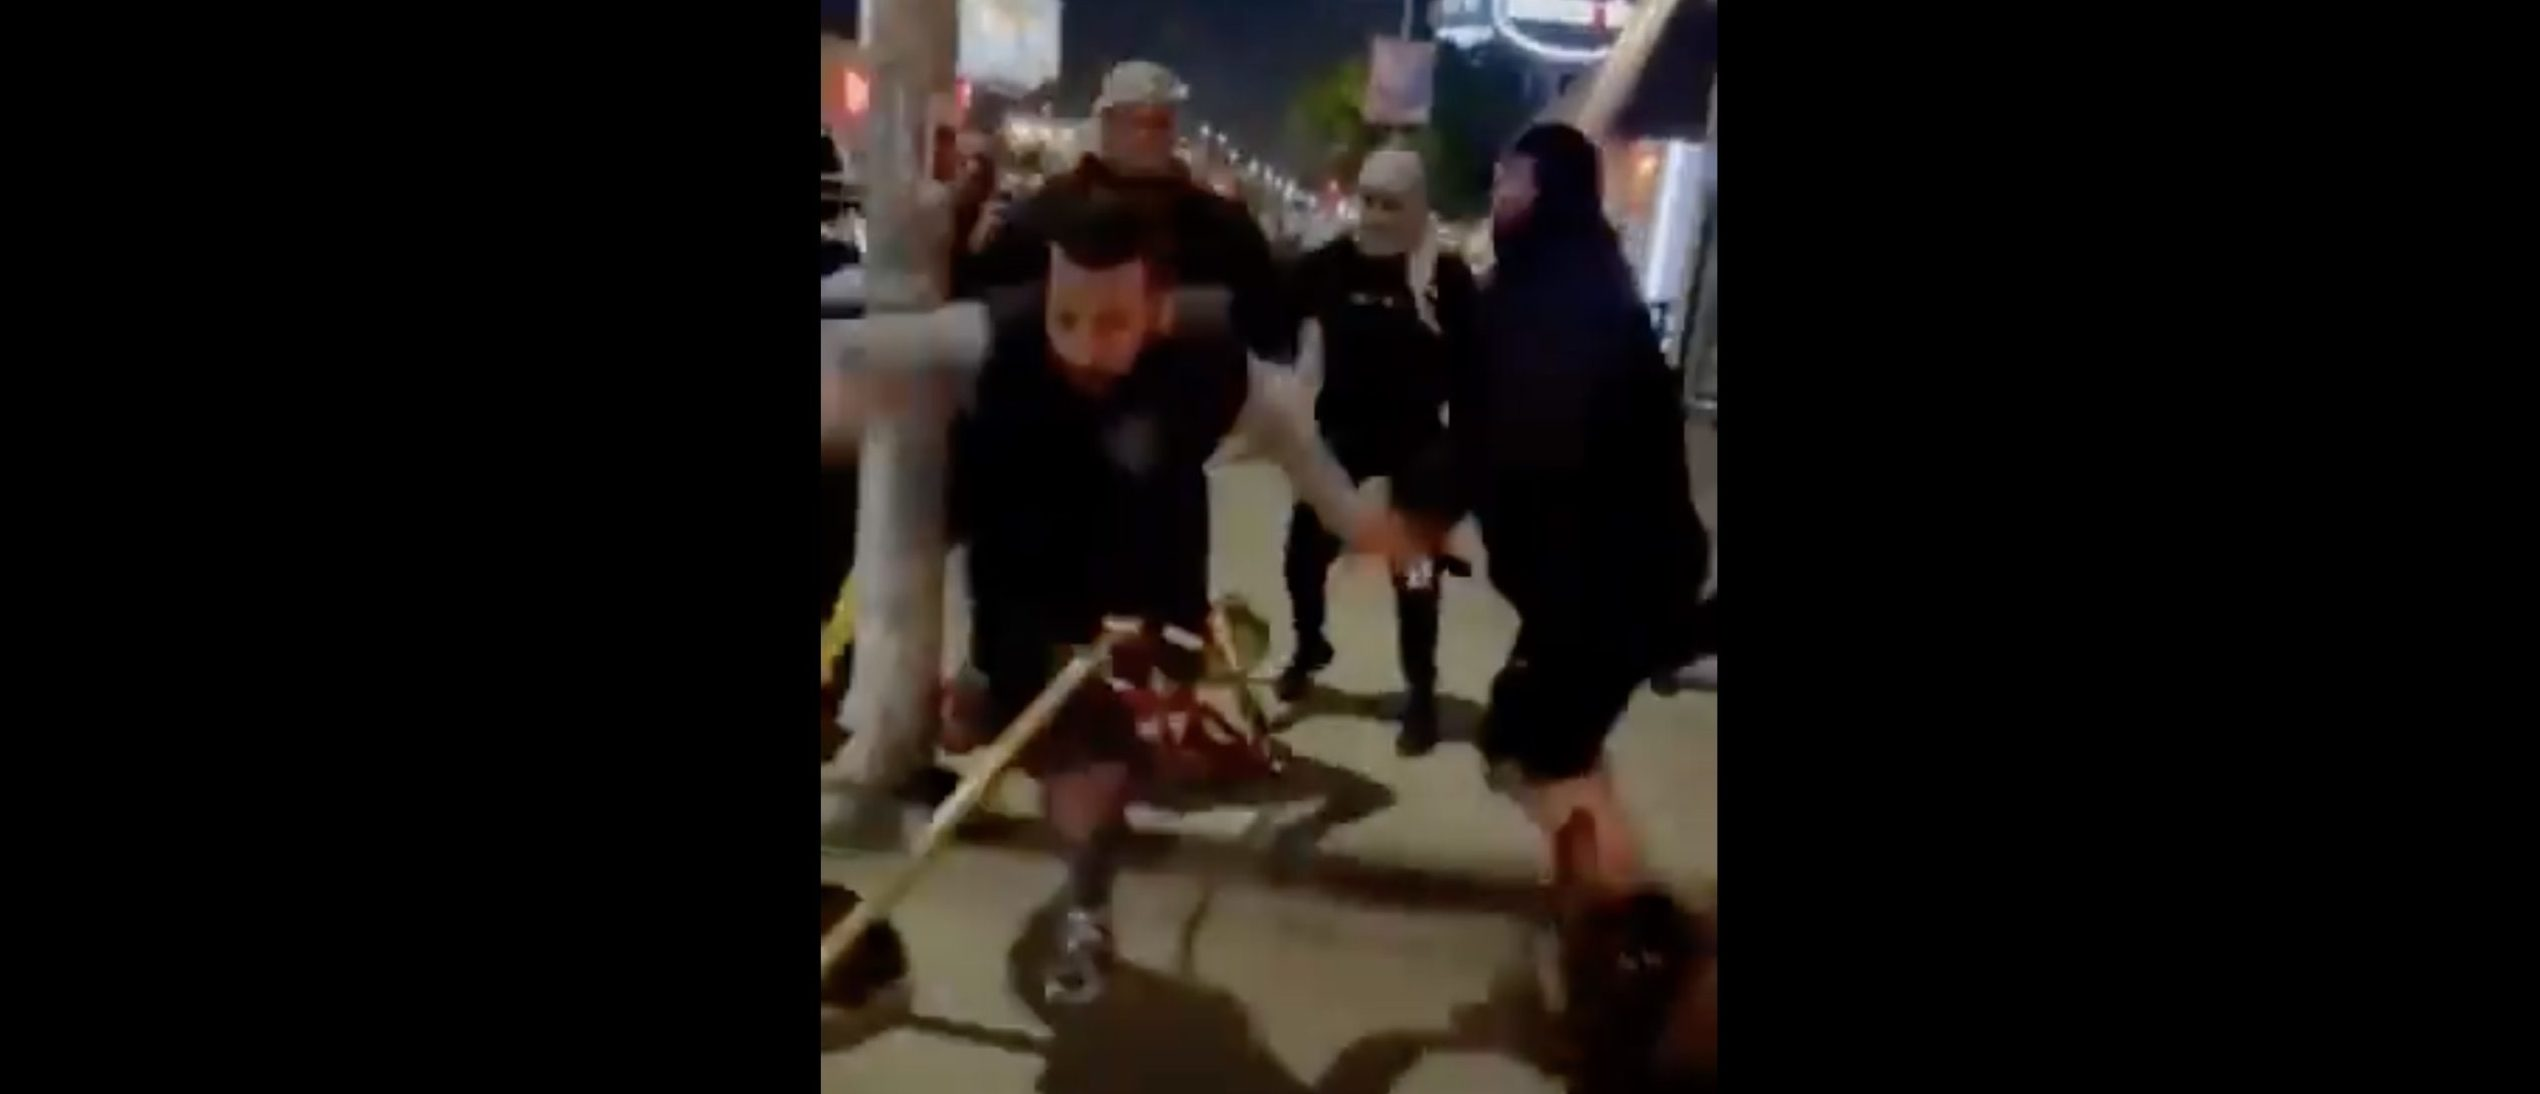 Pro-Palestinian Group Attacks Jewish People Outside Of LA Restaurant, Video Appears To Show. Police To Investigate